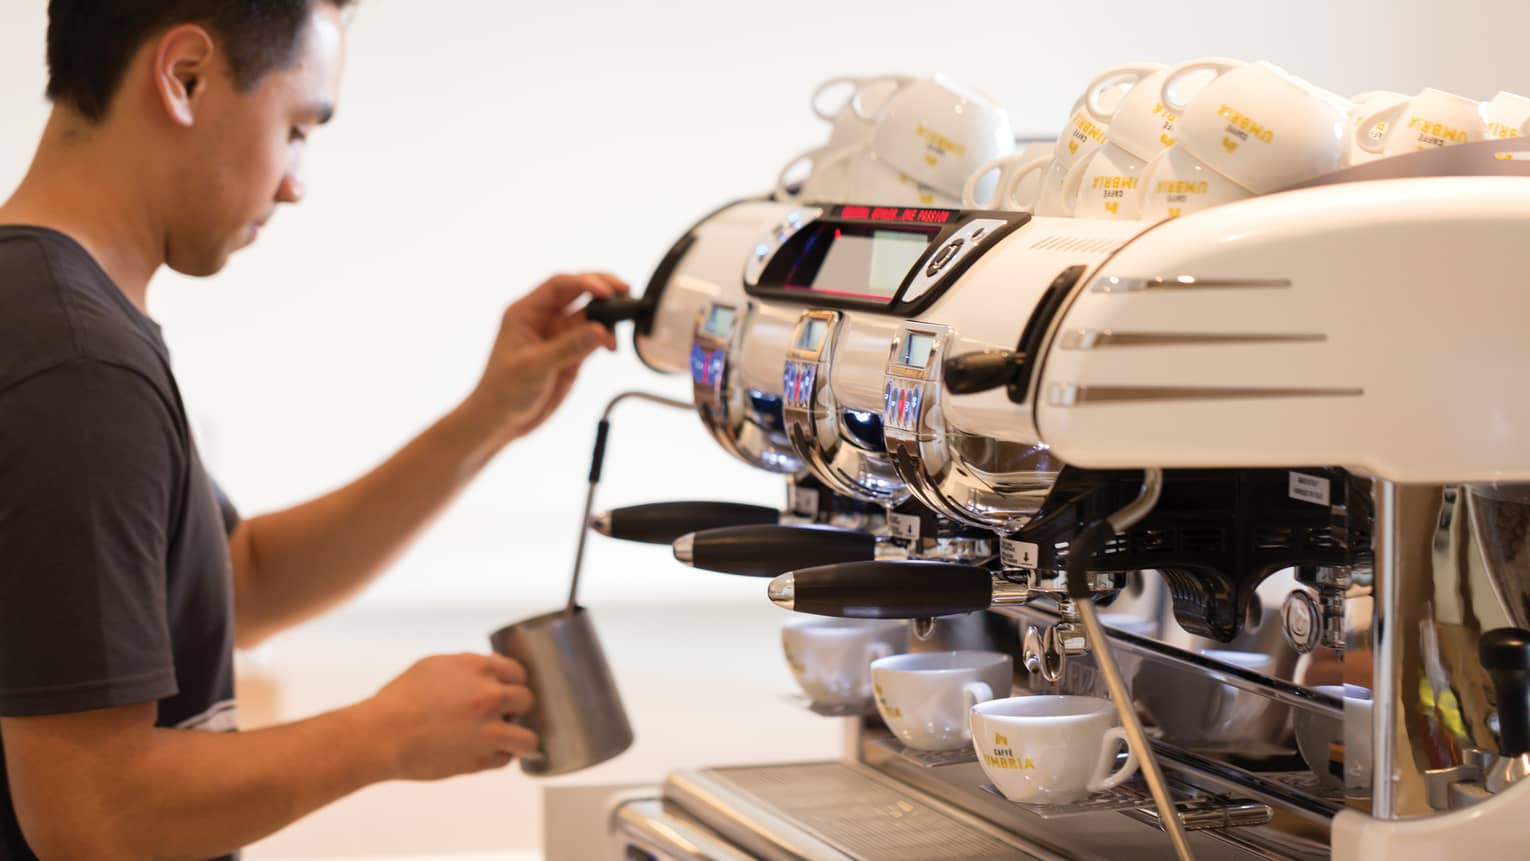 Barista stands in front of espresso machine lines with small white mugs, froths milk in silver jug